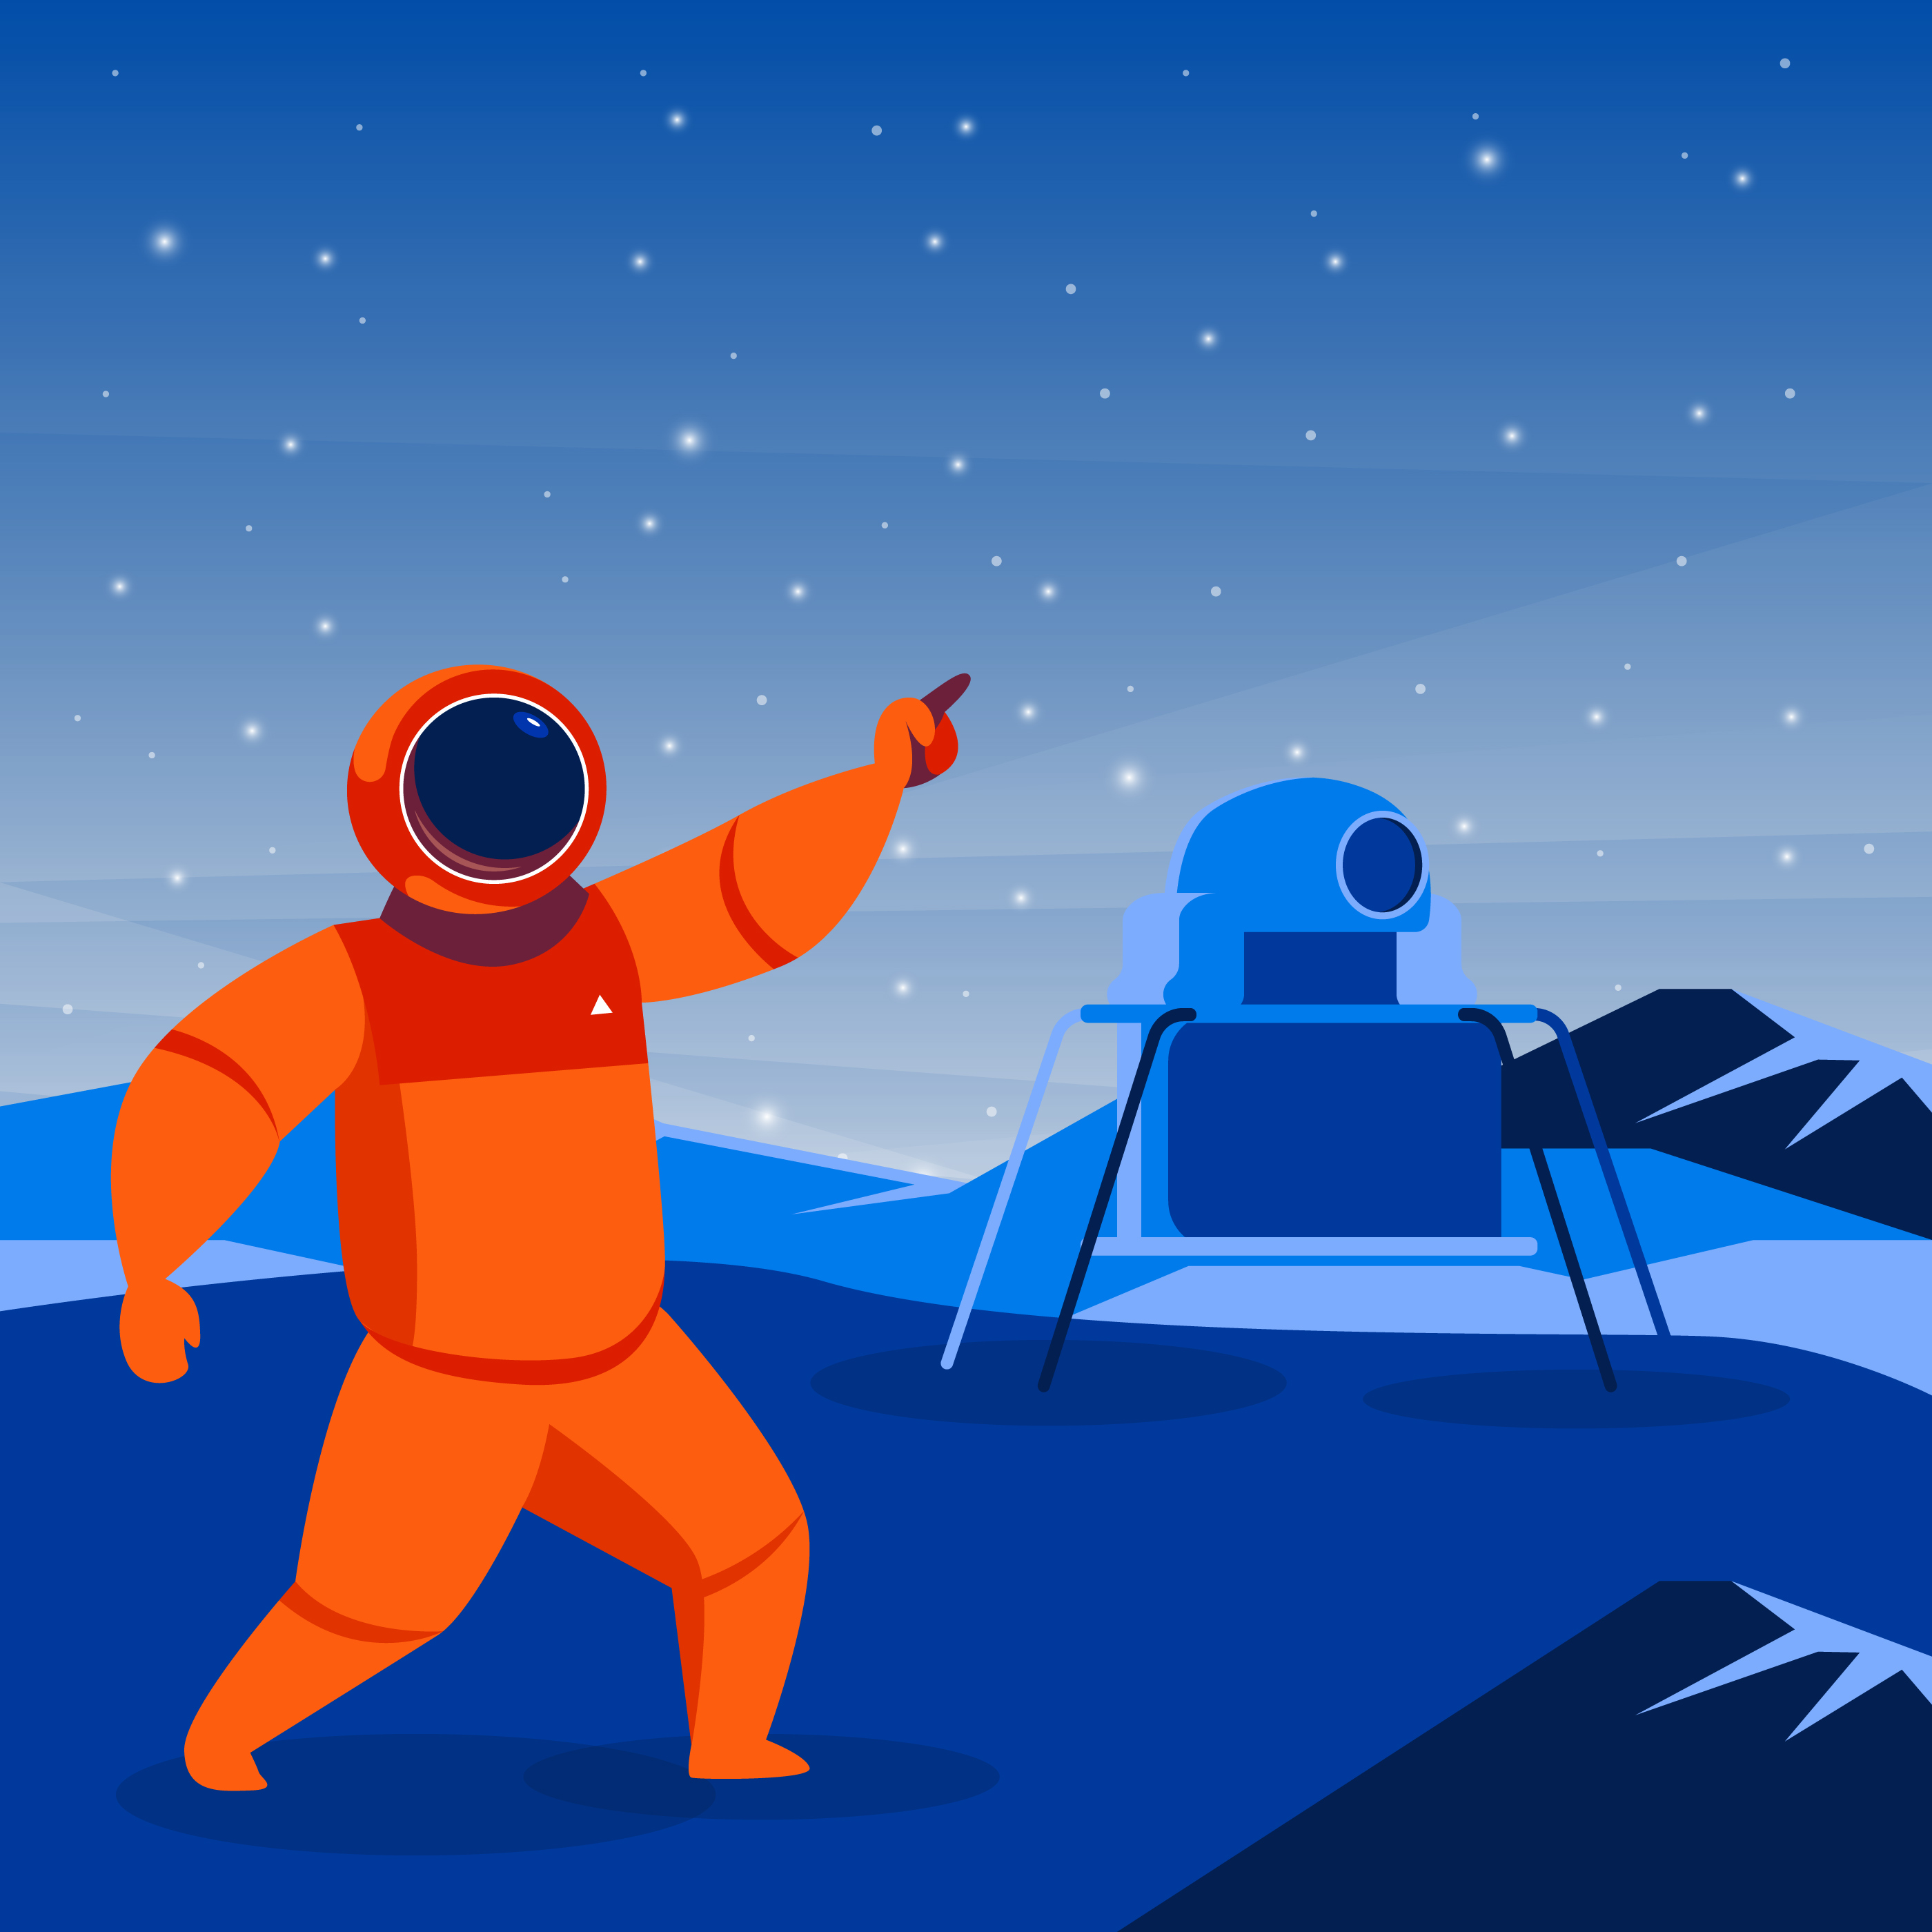 Astronaut And Space Ship Landed On A Planet Illustration Download Free Solar System Orbit Diagram Digital Vector Art Stock Graphics Images